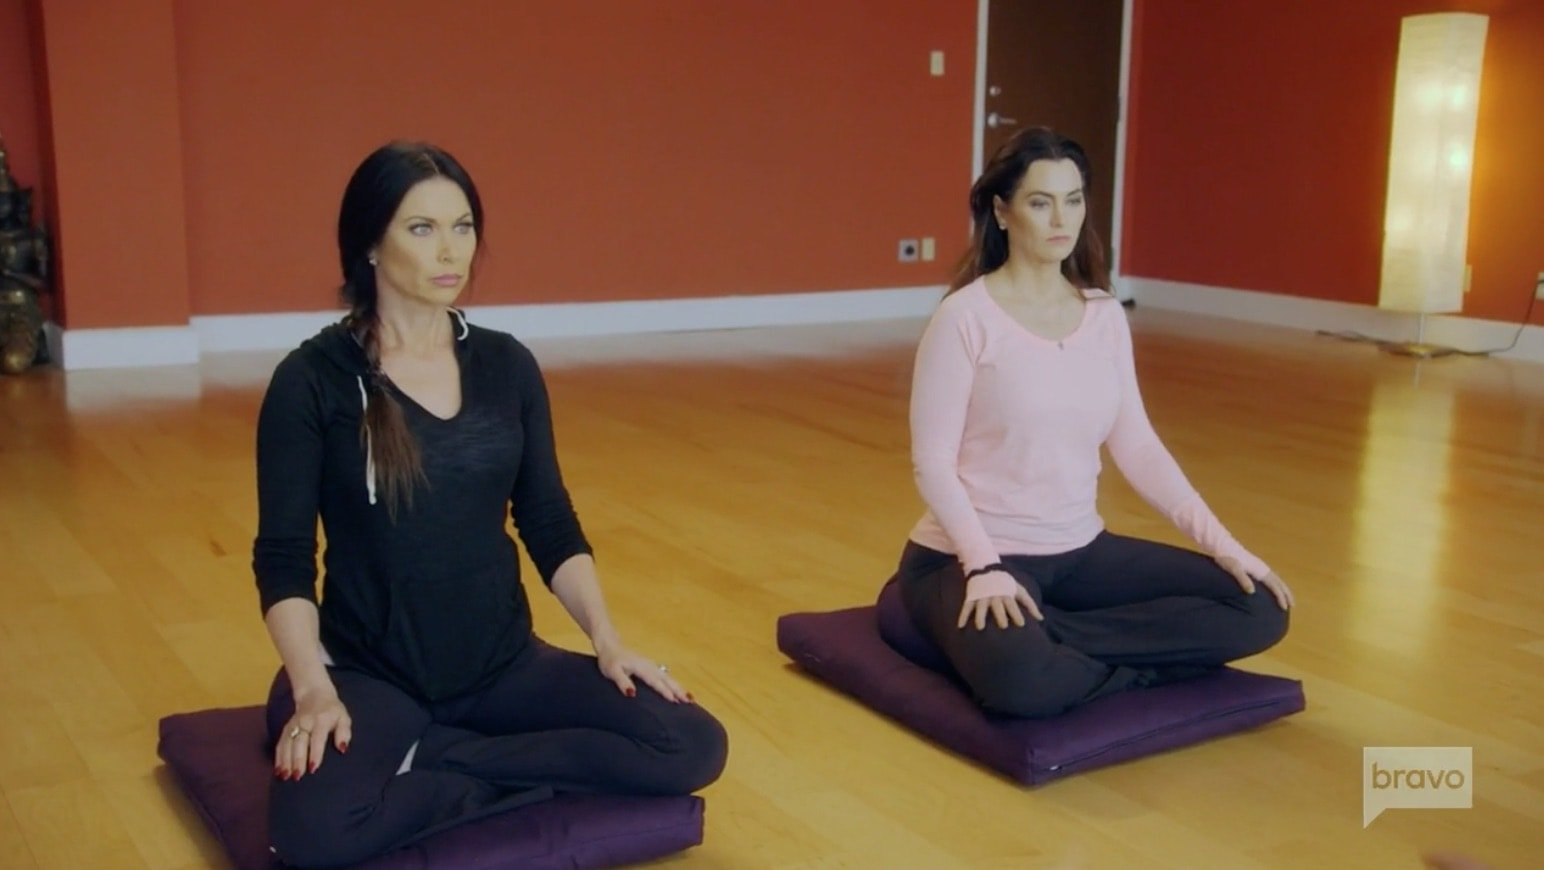 LeeAnne Locken goes zen